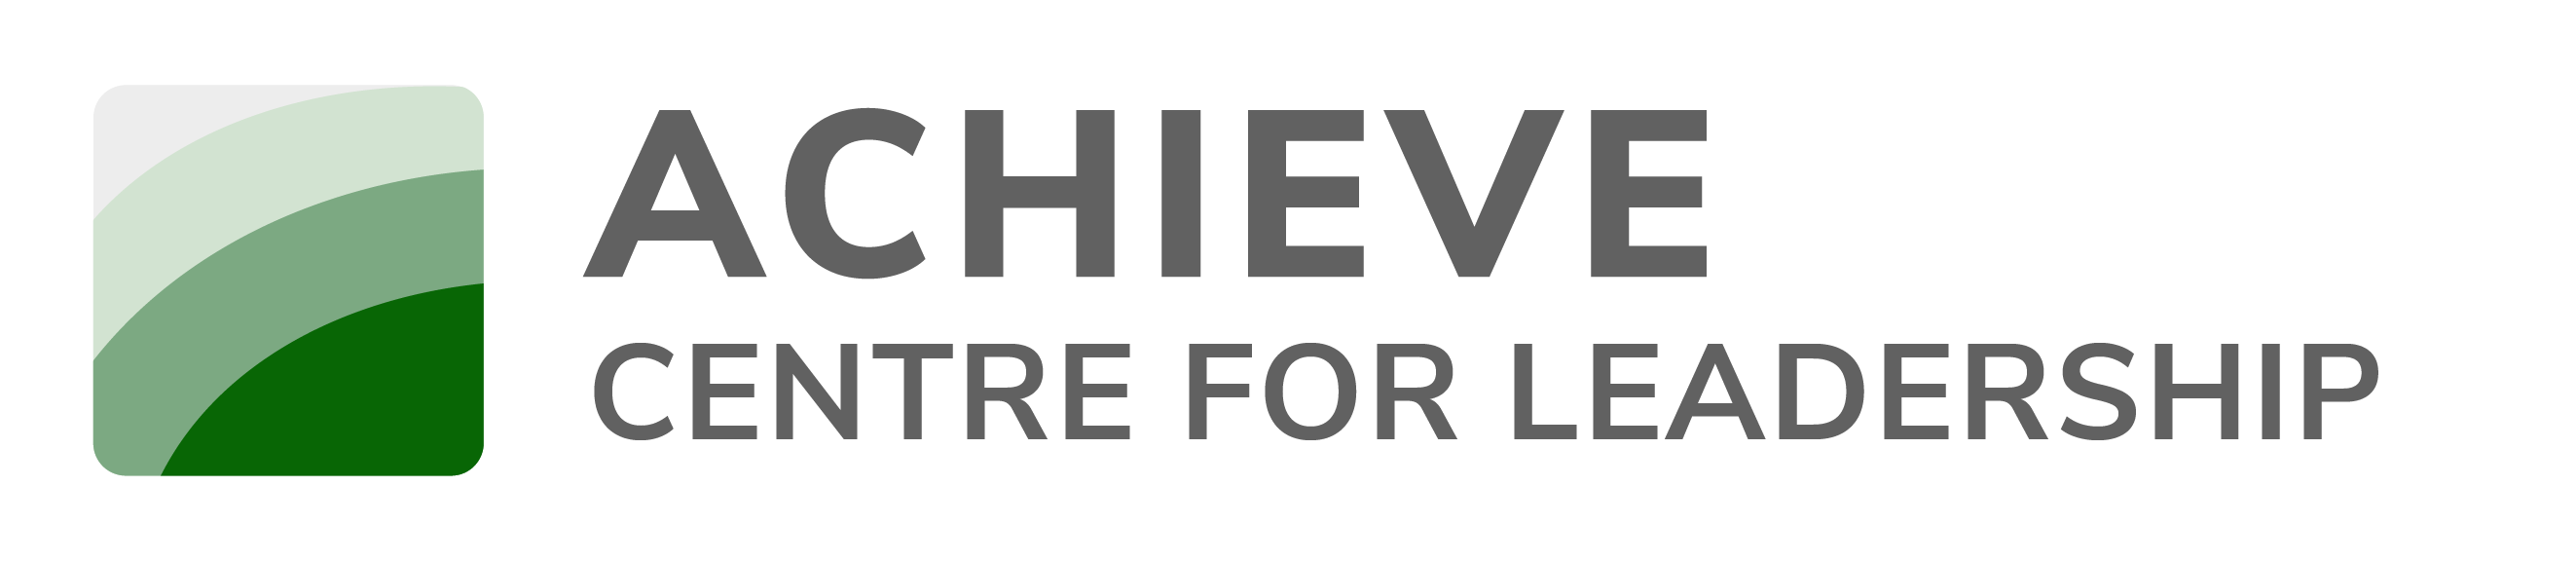 Achieve - Centre for Leadership